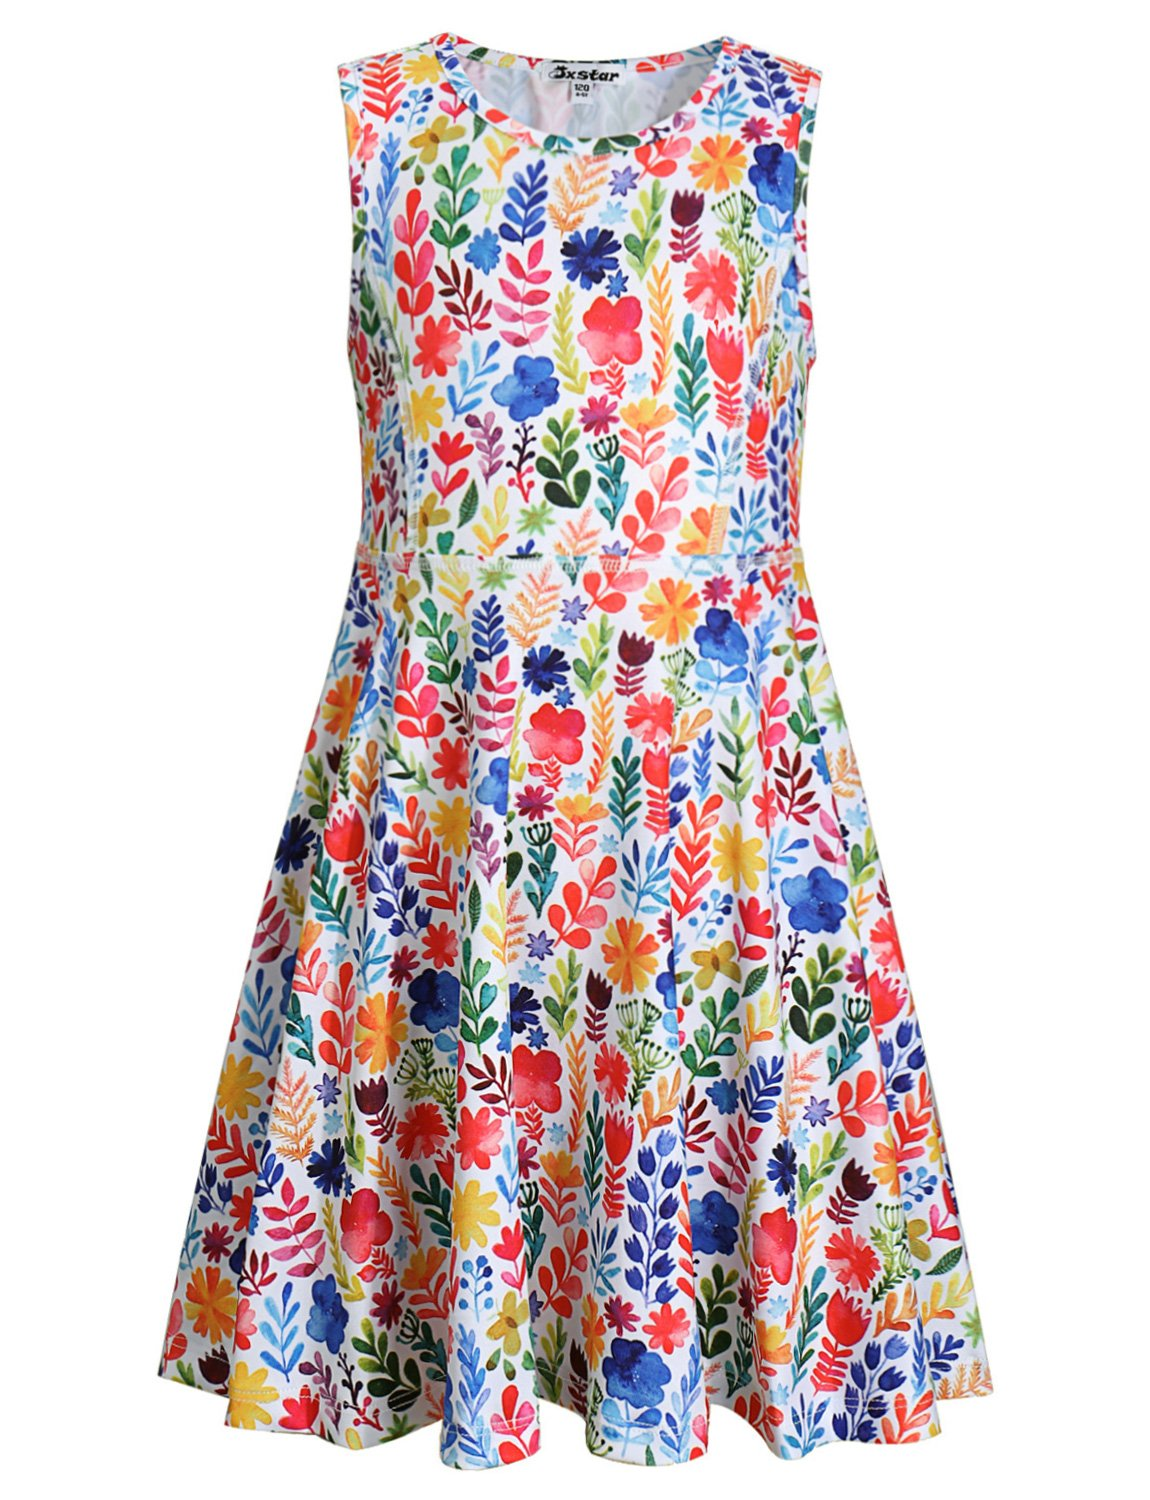 Jxstar Girl Casual Dress Flower Summer Floral Printed Sleeveless Holiday Little by Jxstar (Image #1)